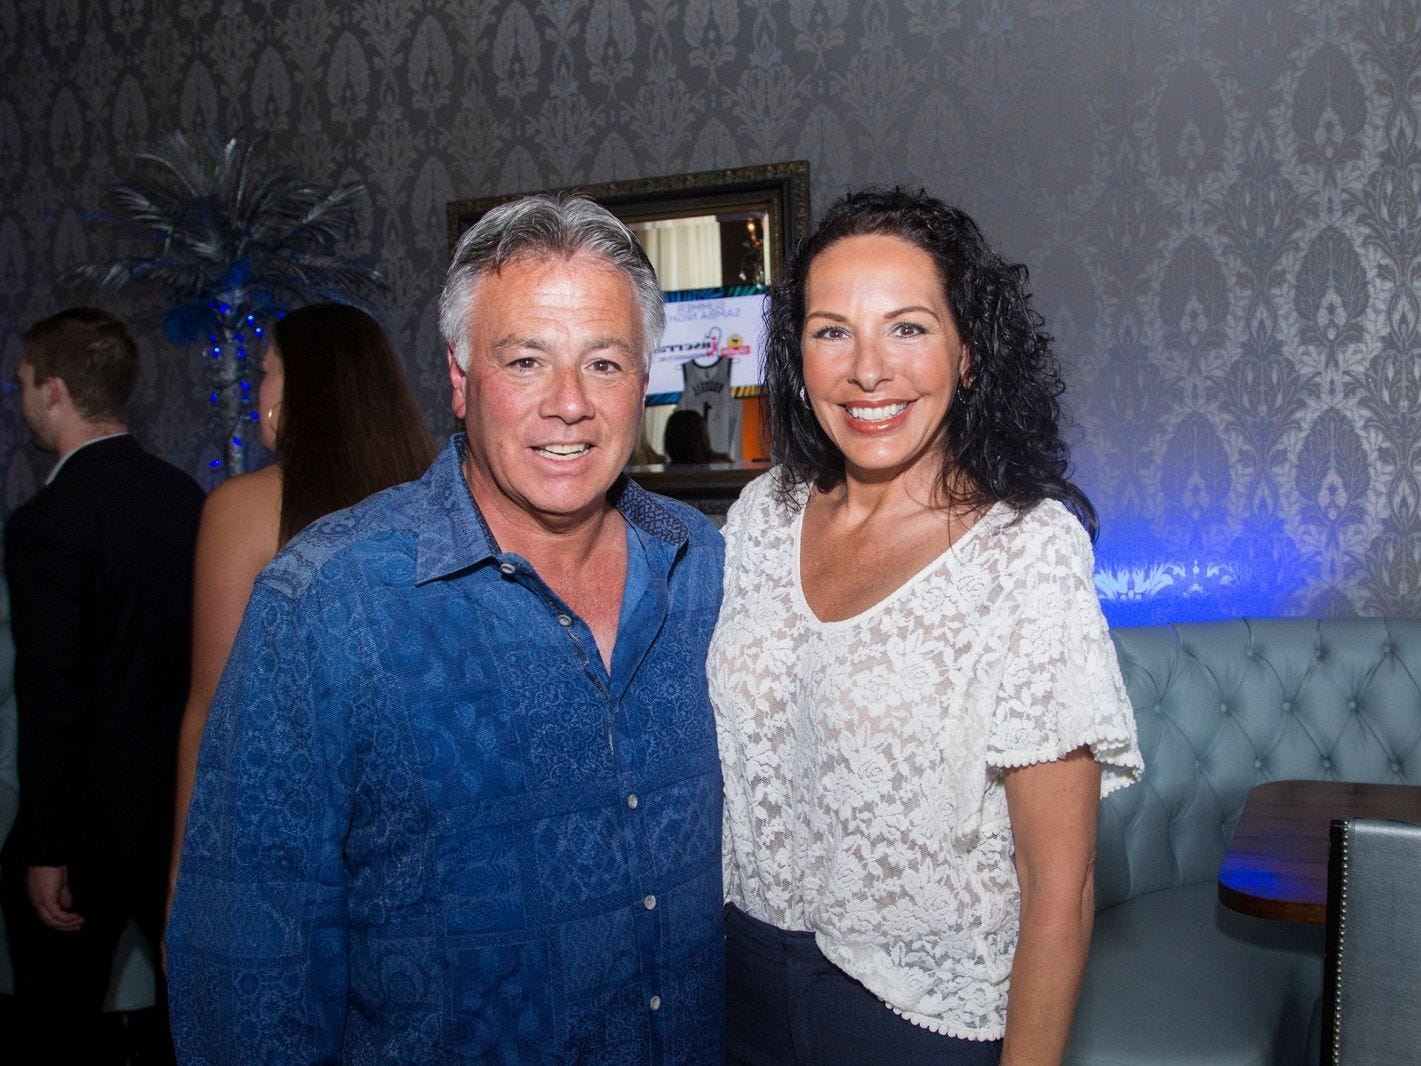 Larry and Inez Inserra. Summer Samba Night benefitting Tackle Kids Cancer hosted by Cara Robles, Luis Robles (NY Red Bulls Goalkeeper), Jennifer Farber, and Dr. Michael Farber at Son Cubano in West New York. 08/08/2018